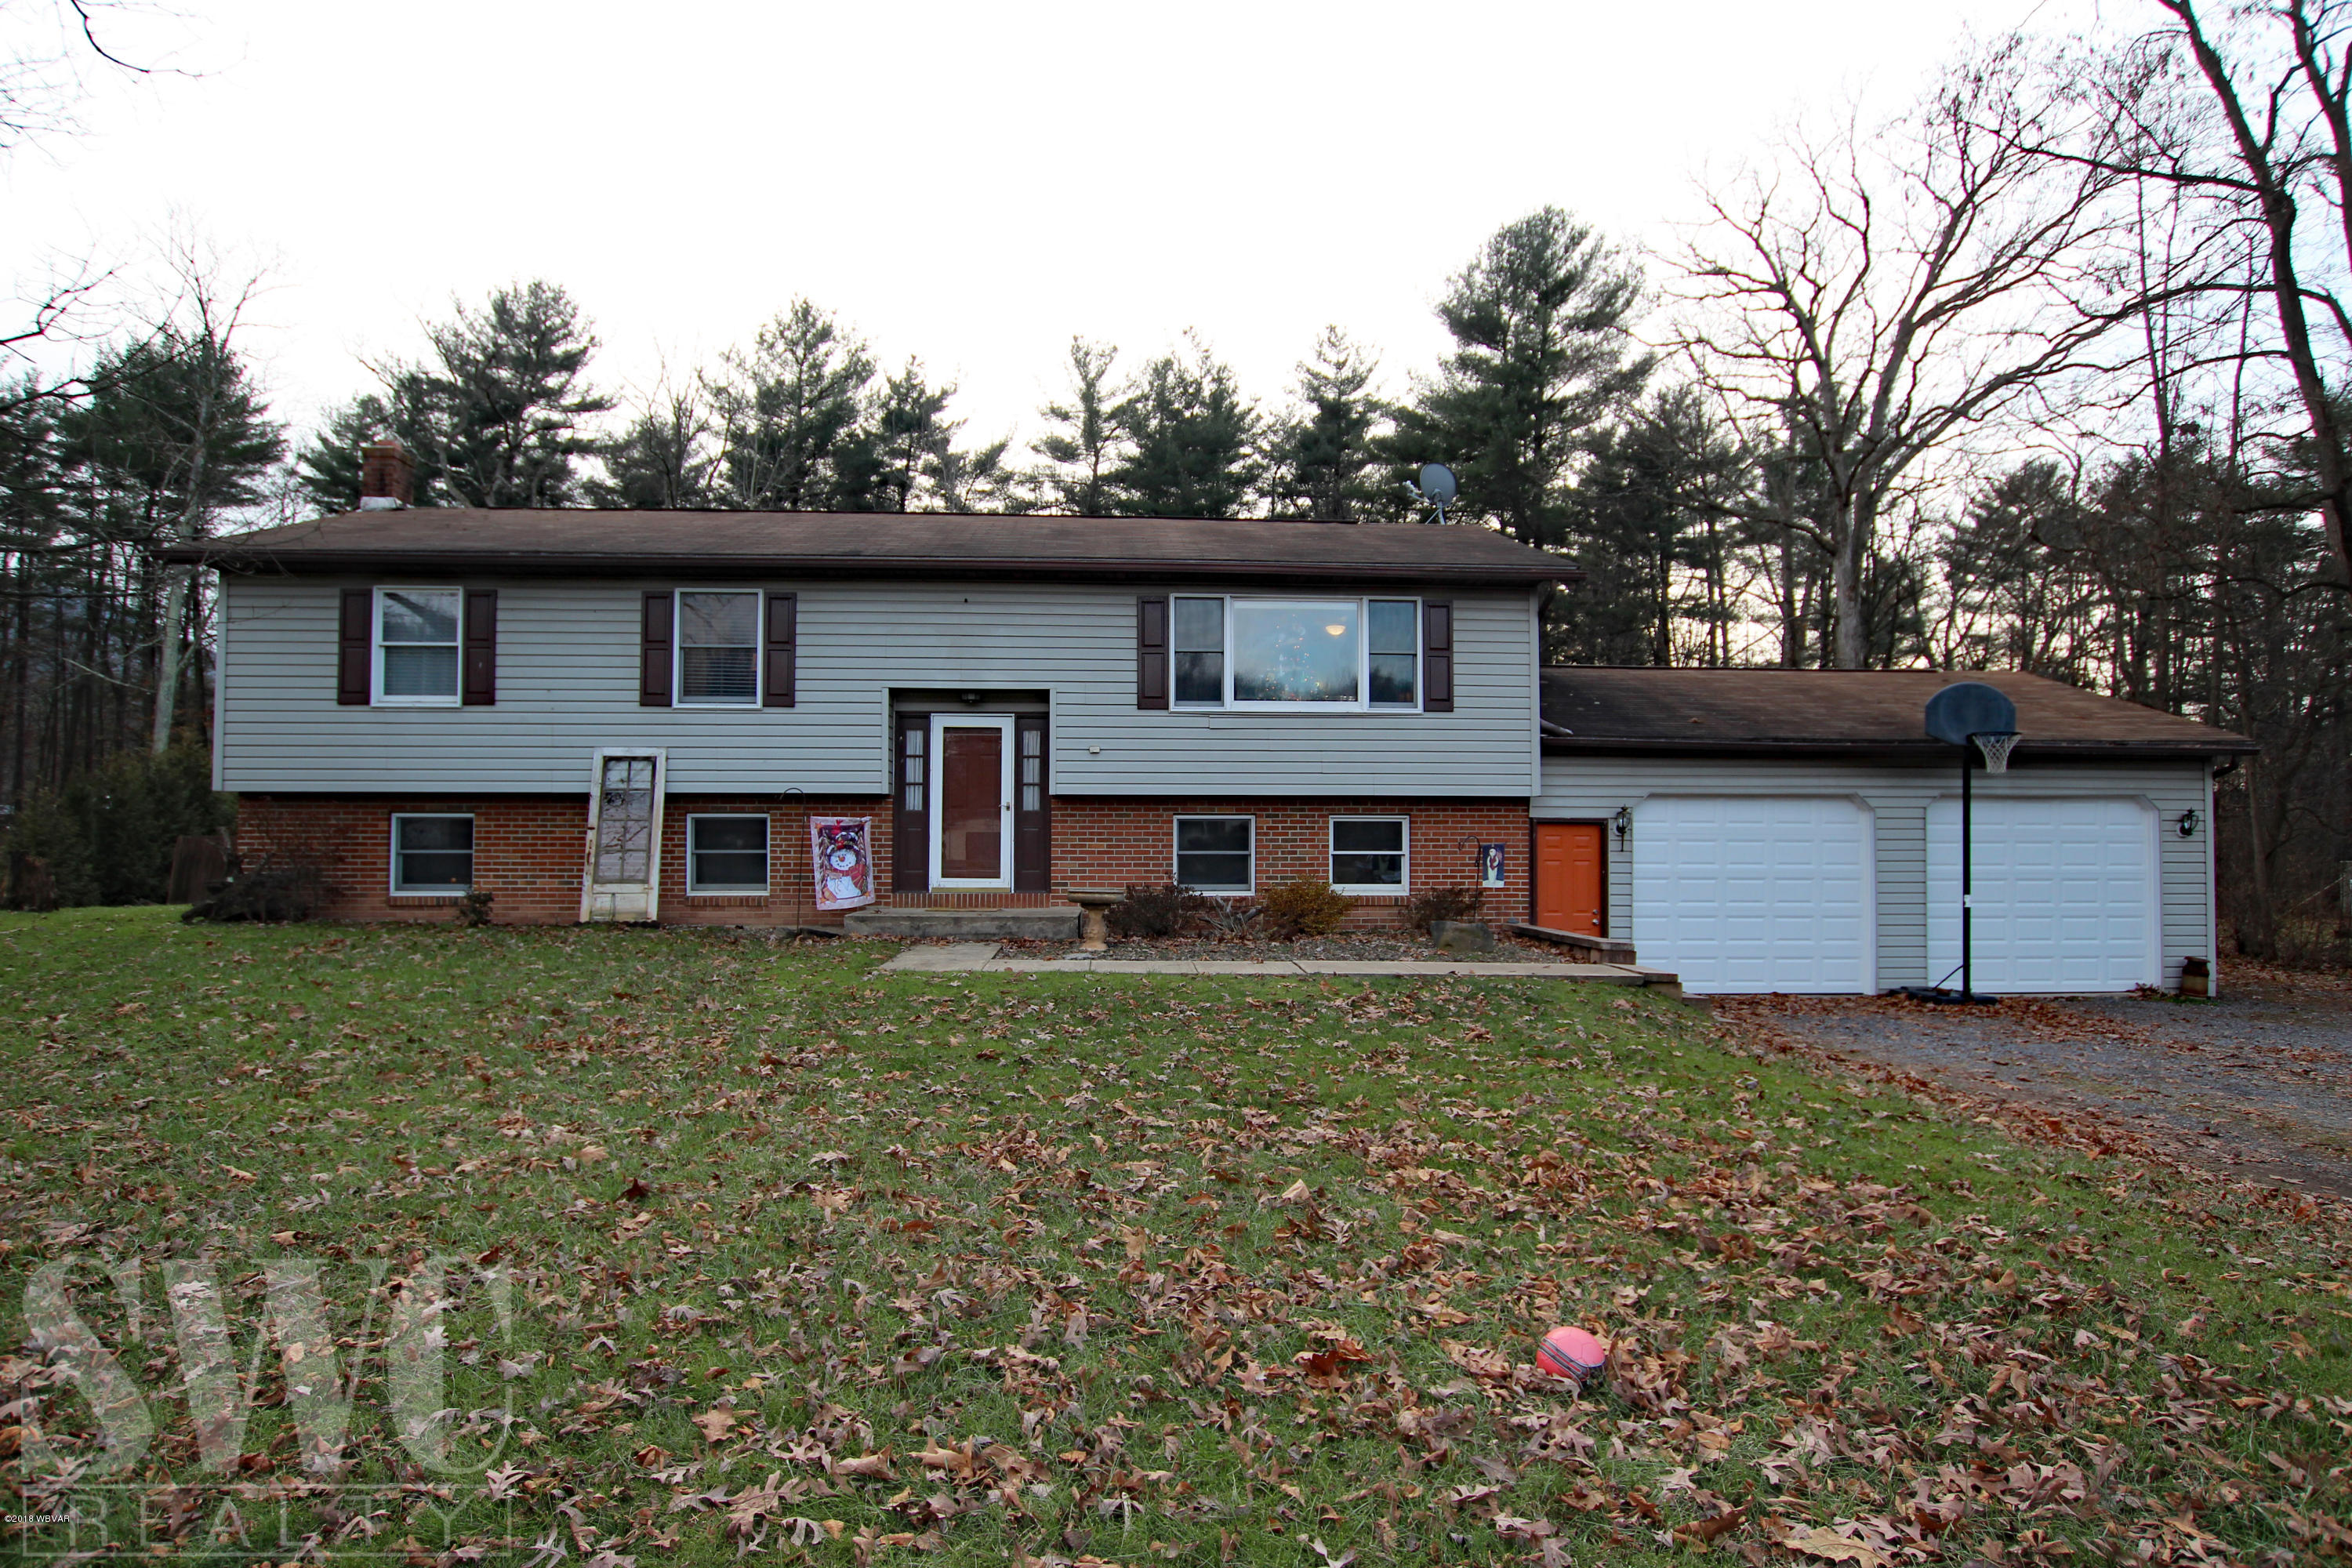 127 HAVEN PINES ROAD,Mill Hall,PA 17751,3 Bedrooms Bedrooms,1 BathroomBathrooms,Residential,HAVEN PINES,WB-86062